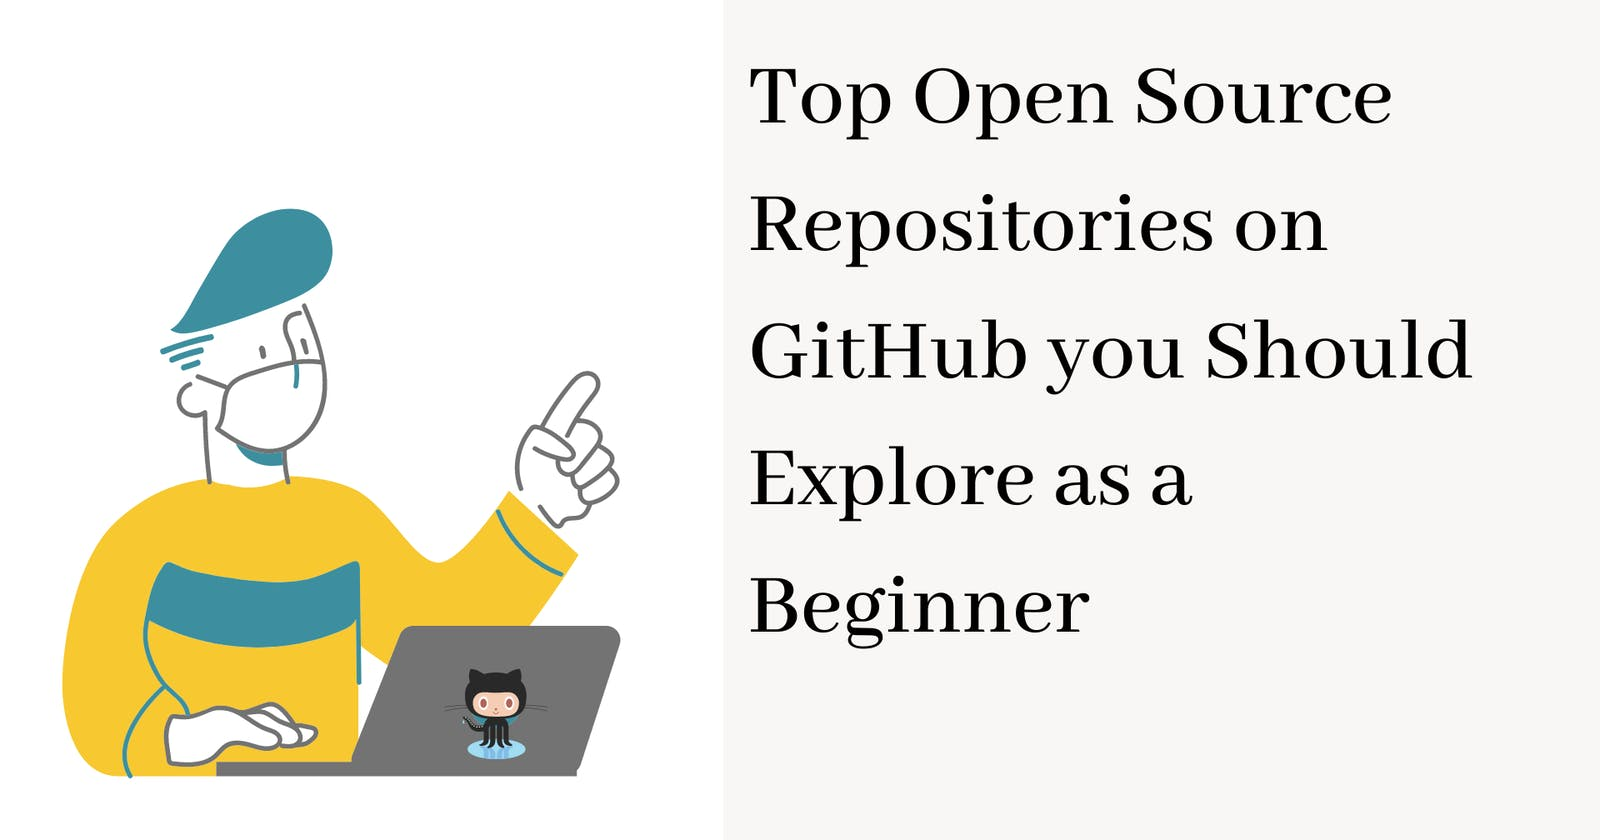 Open Source Repositories on GitHub you should Explore as a Beginner